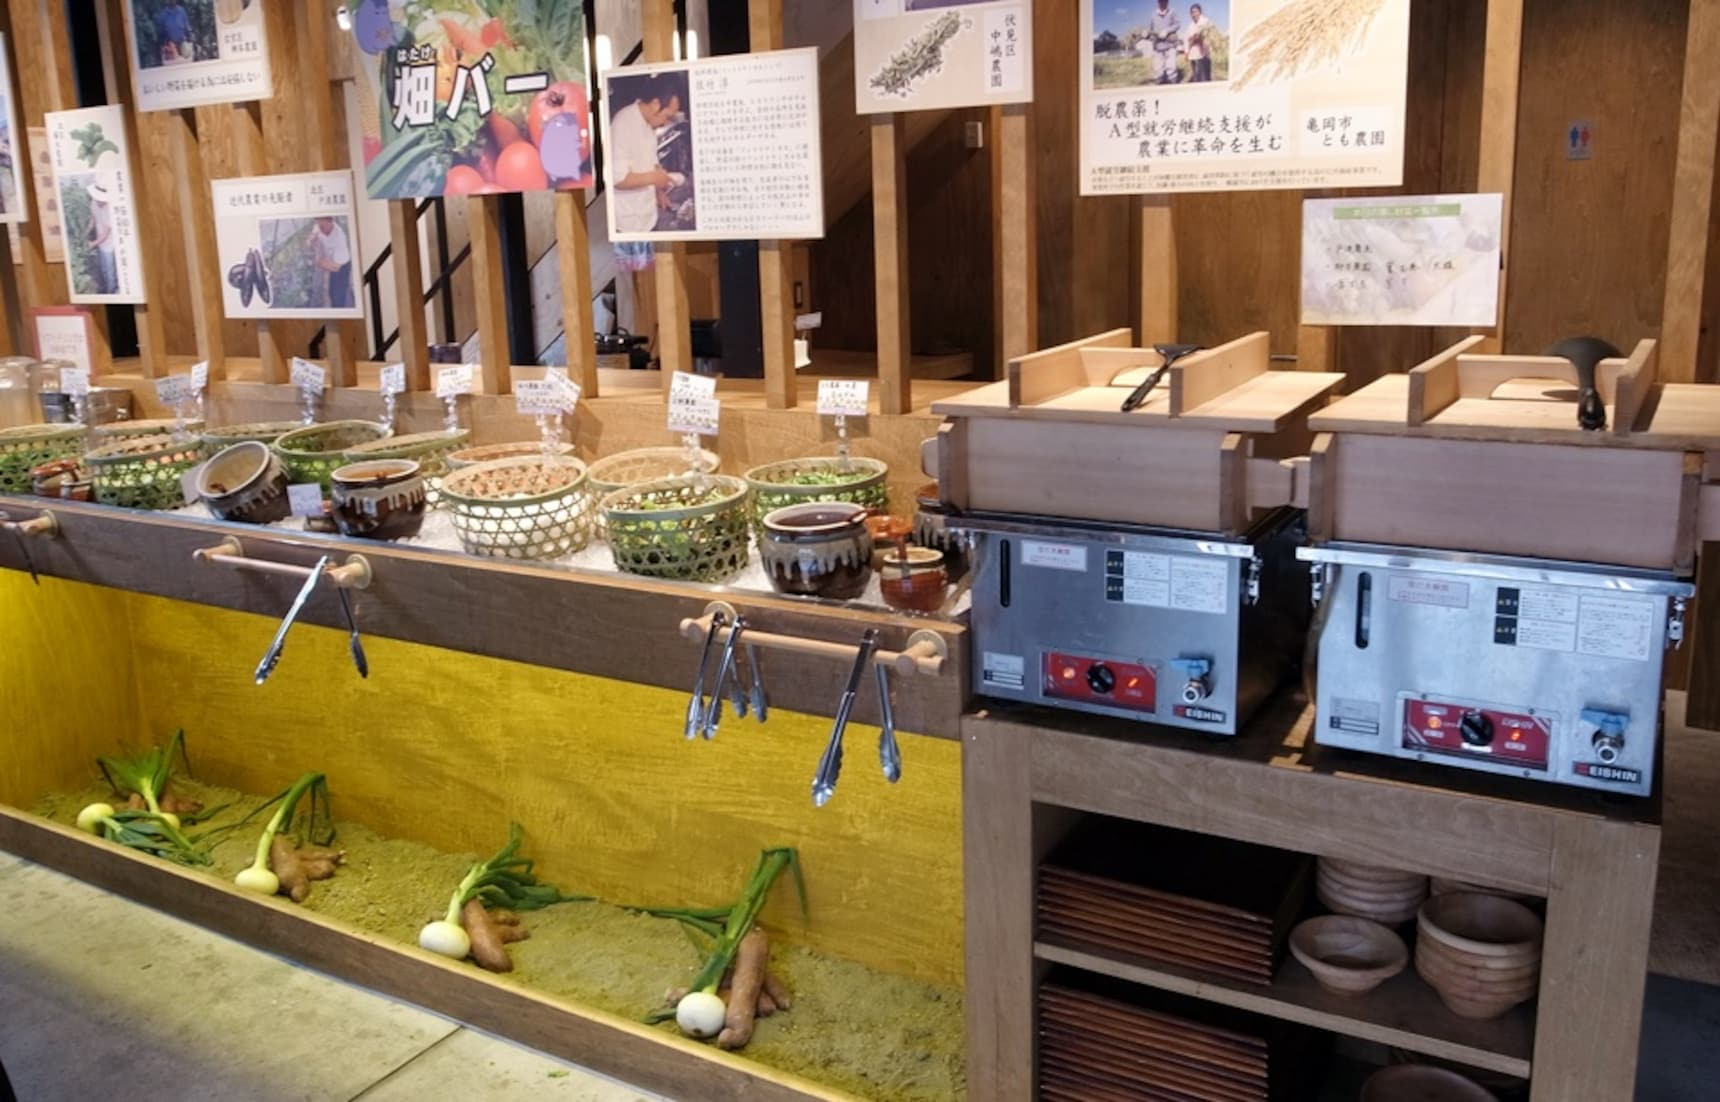 All-You-Can-Eat Vegetable Bar for Only ¥500!